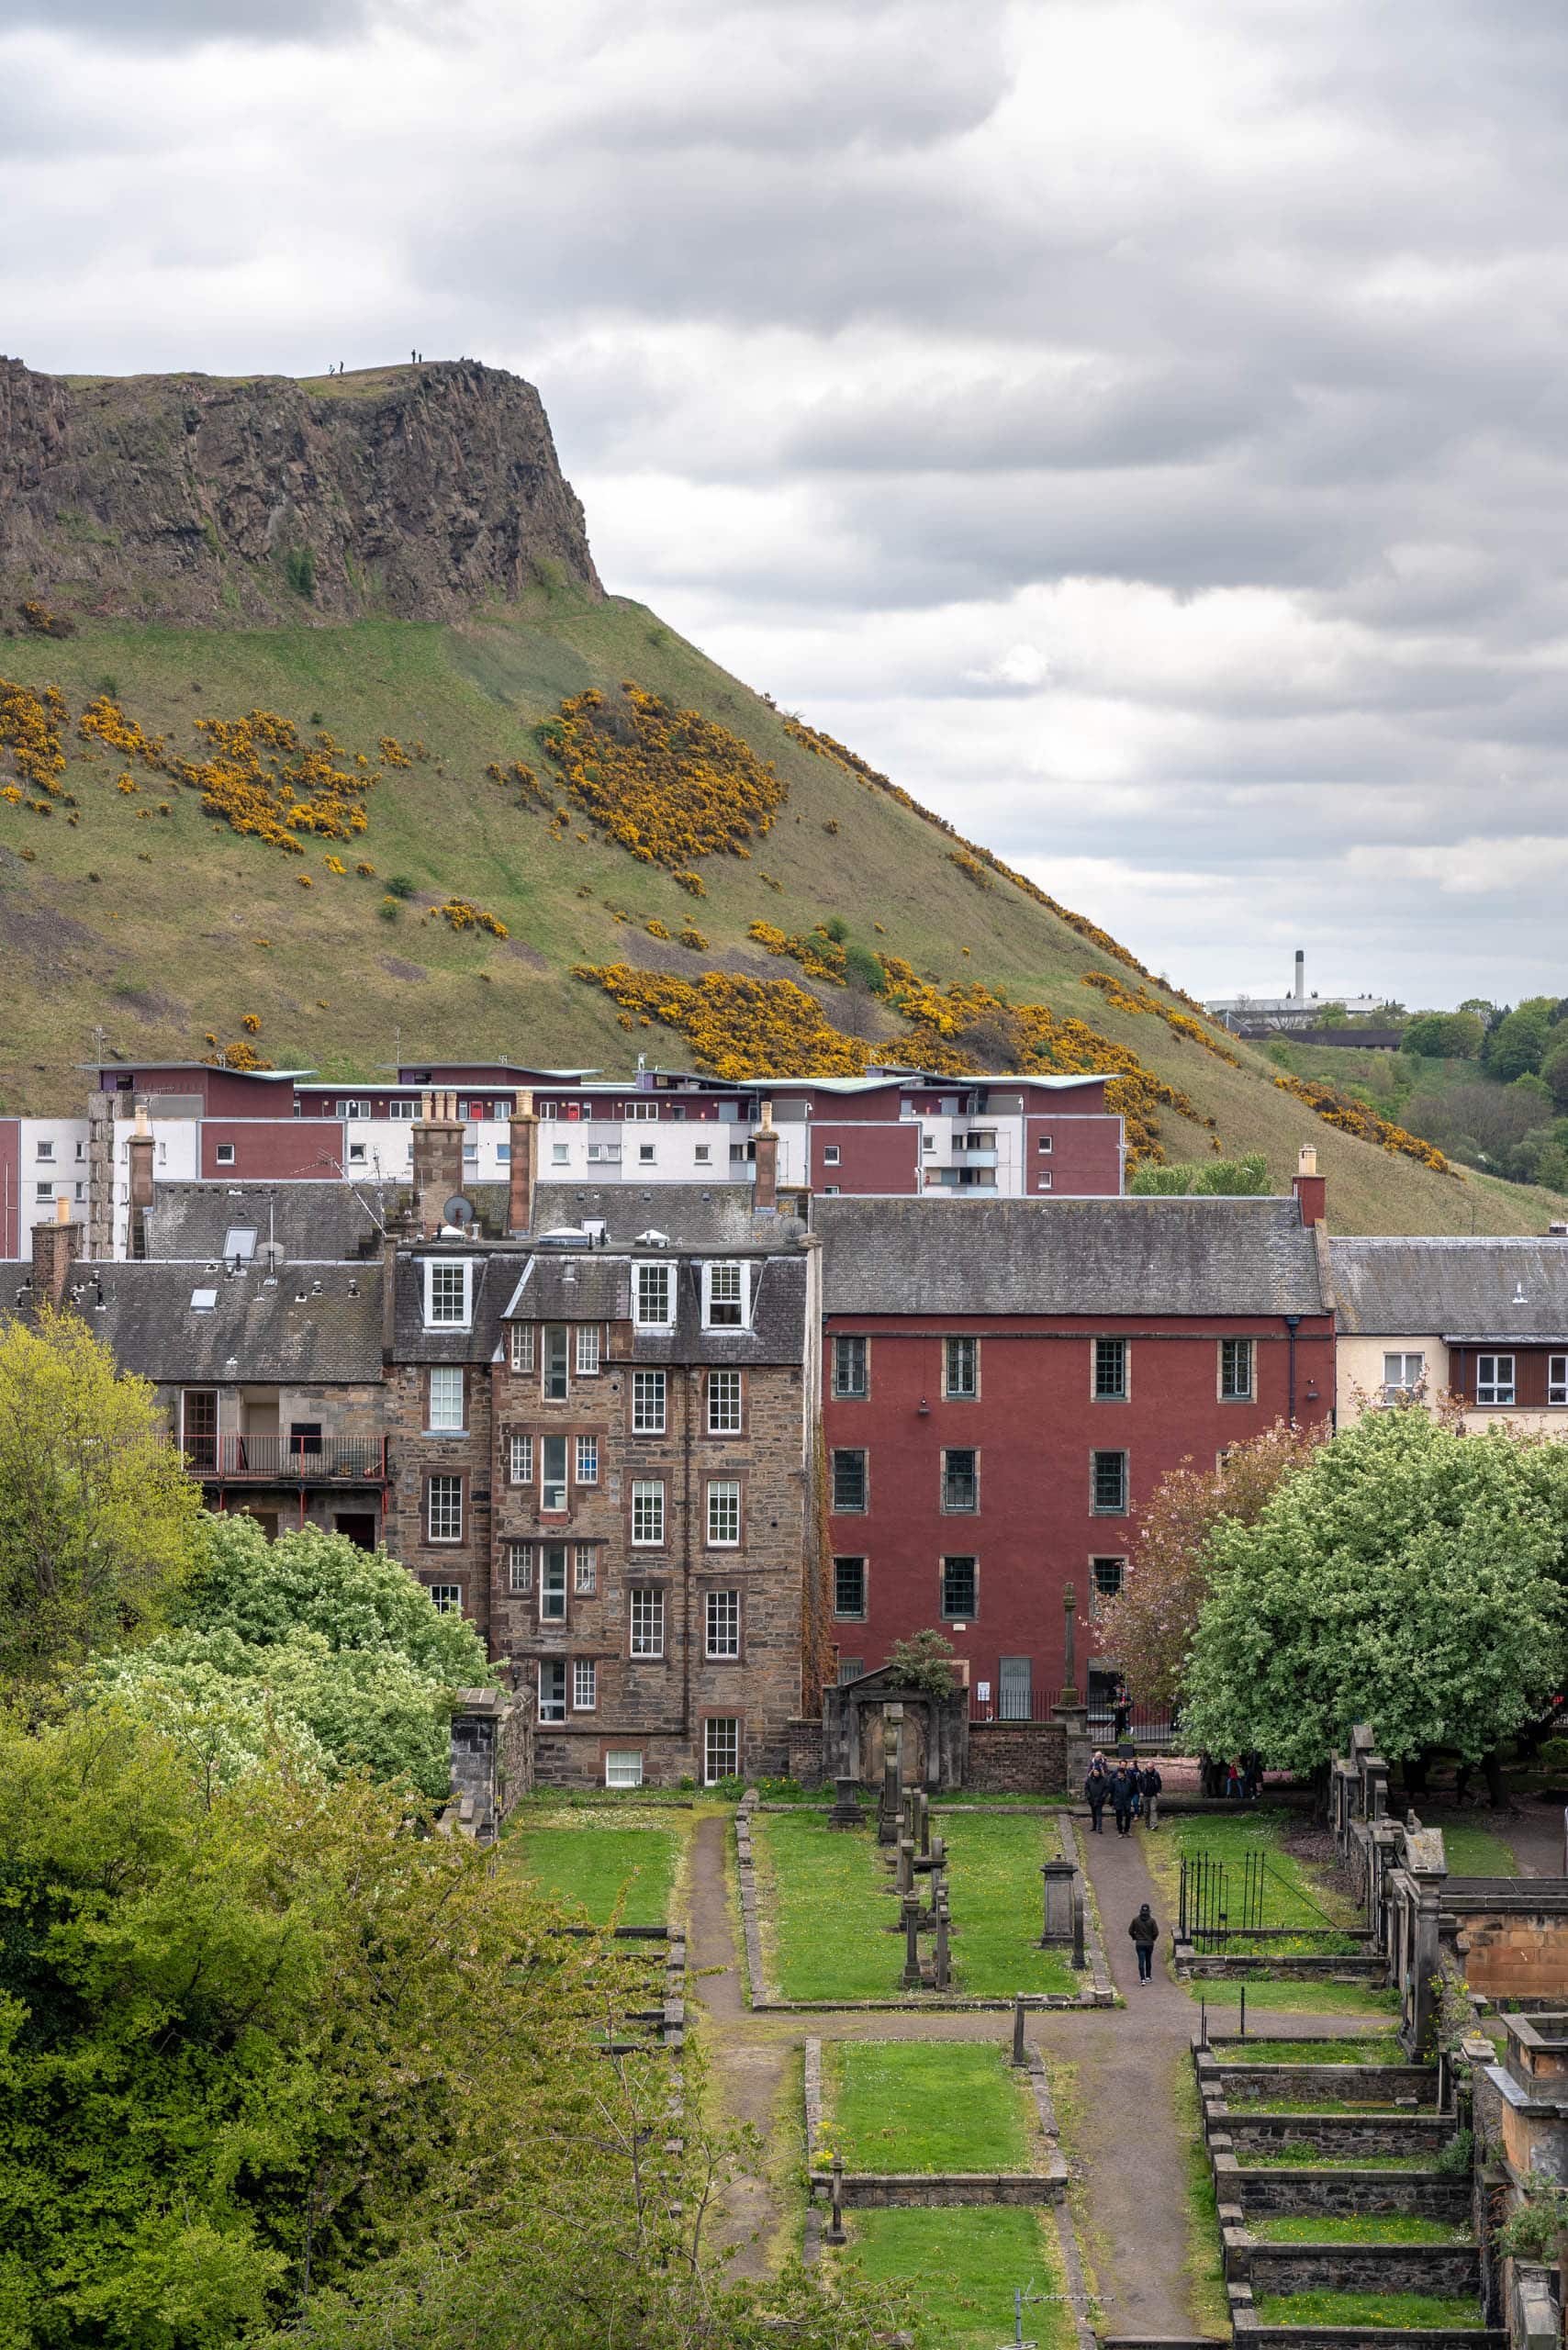 Salisbury Crags - view from Regent Road | f/8 1/160sec ISO-100 97mm  | ILCE-7RM3